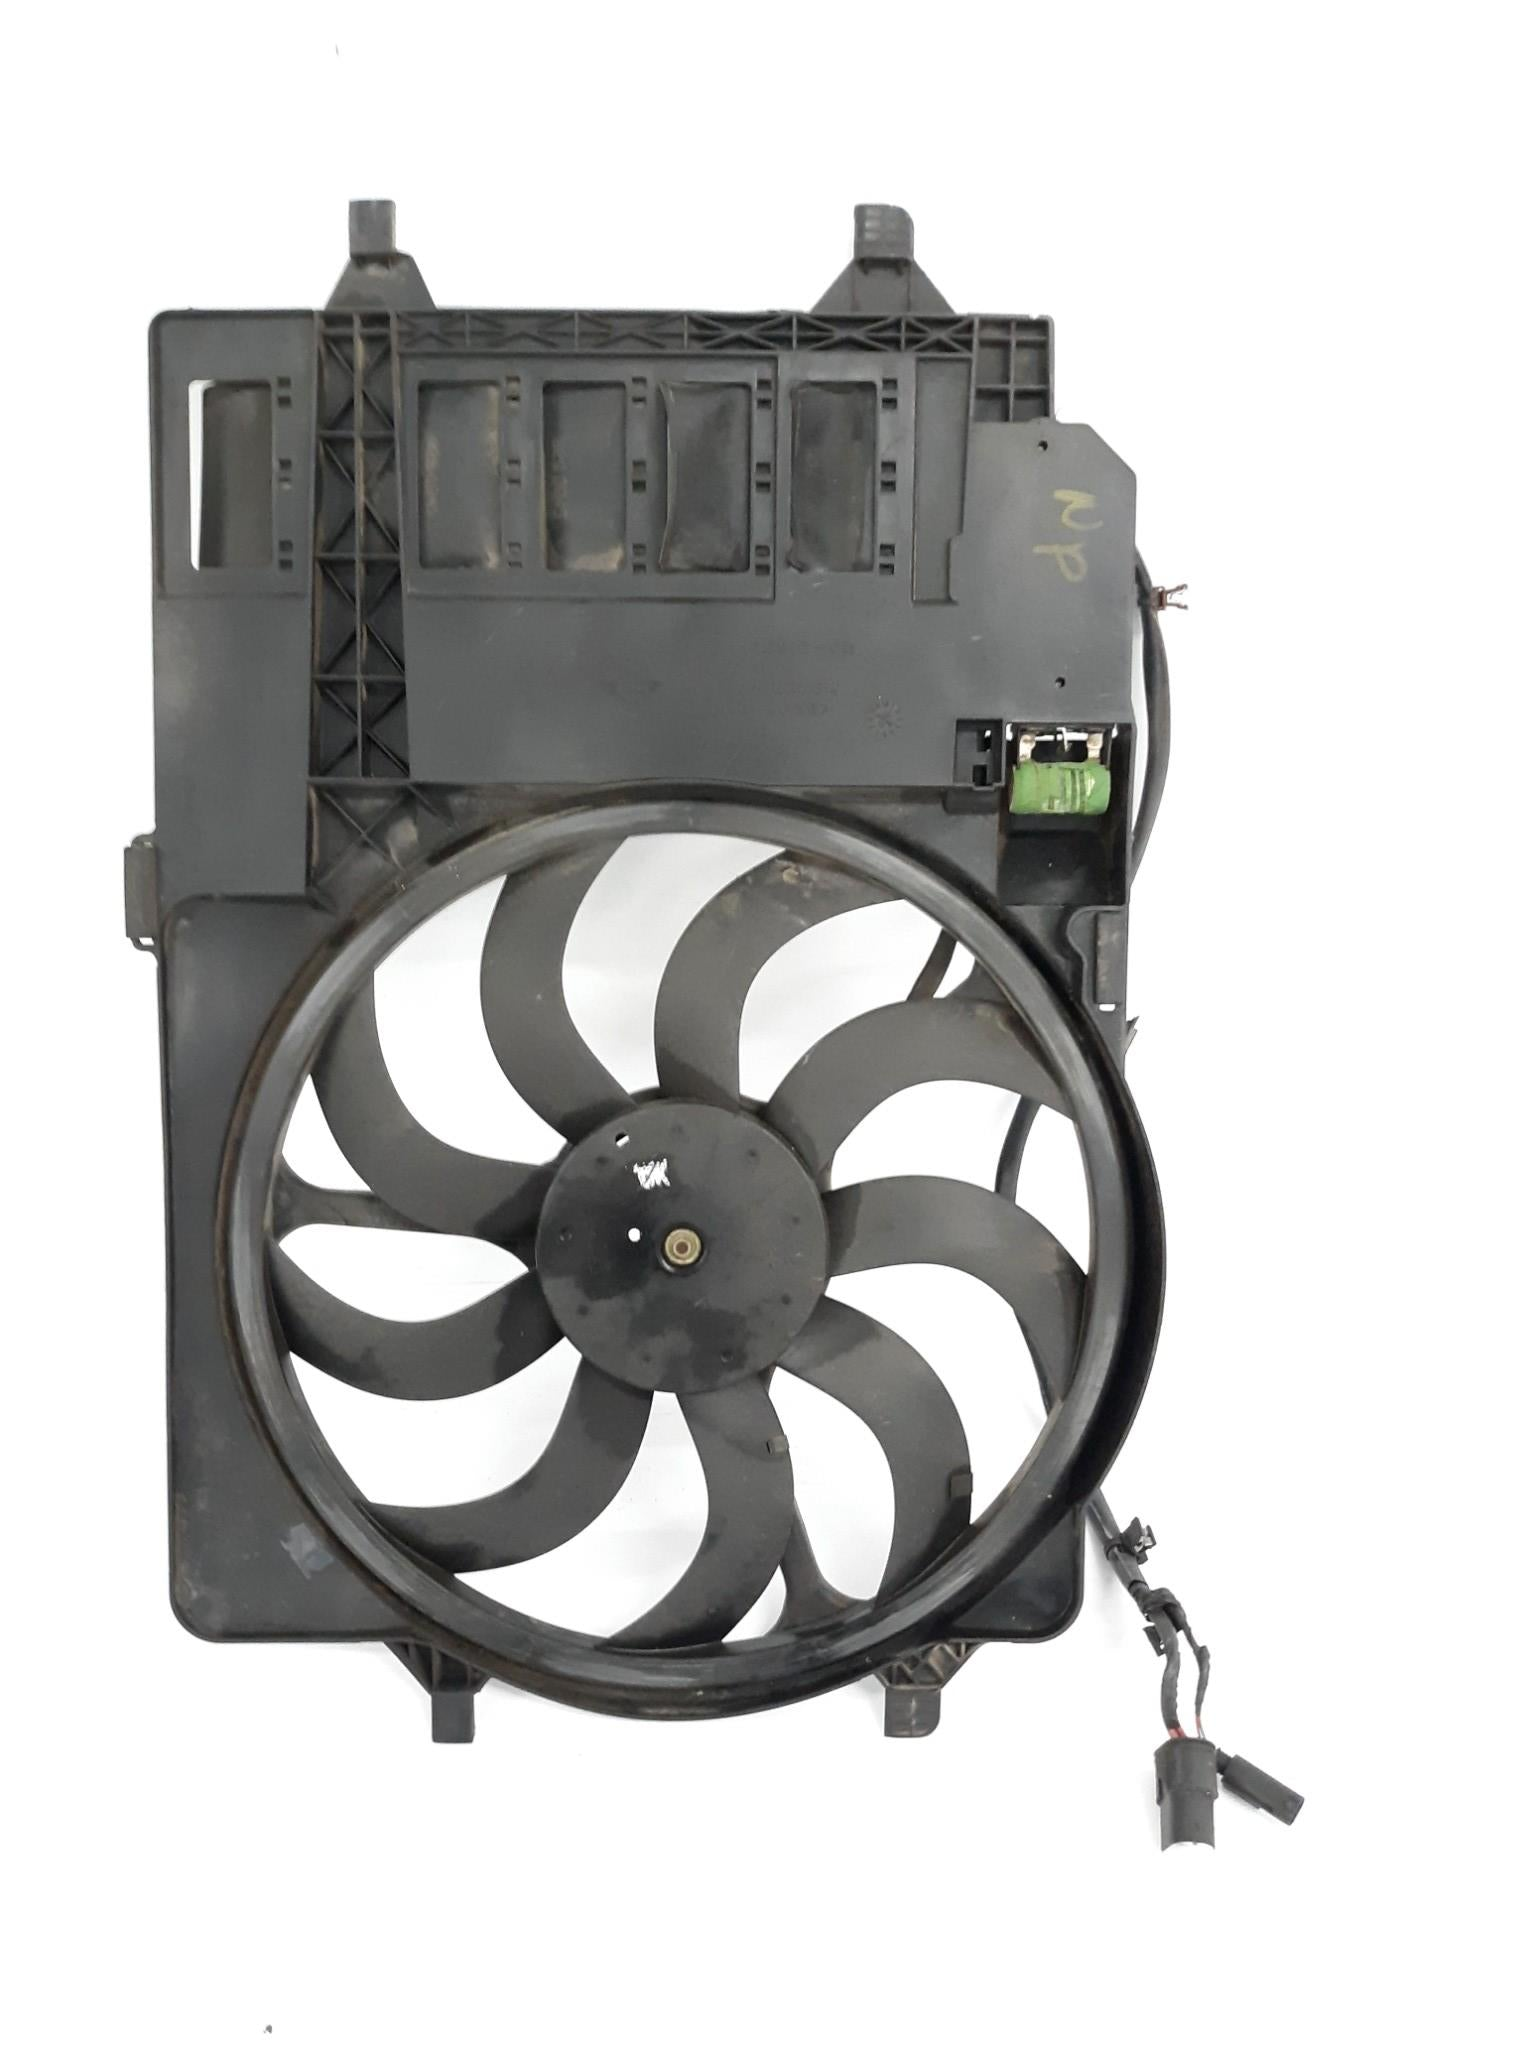 2002-2006 Mini Cooper  R50 R53 Electric Cooling Fan Motor Houssing 1475577 OEM - Click Receive Auto Parts